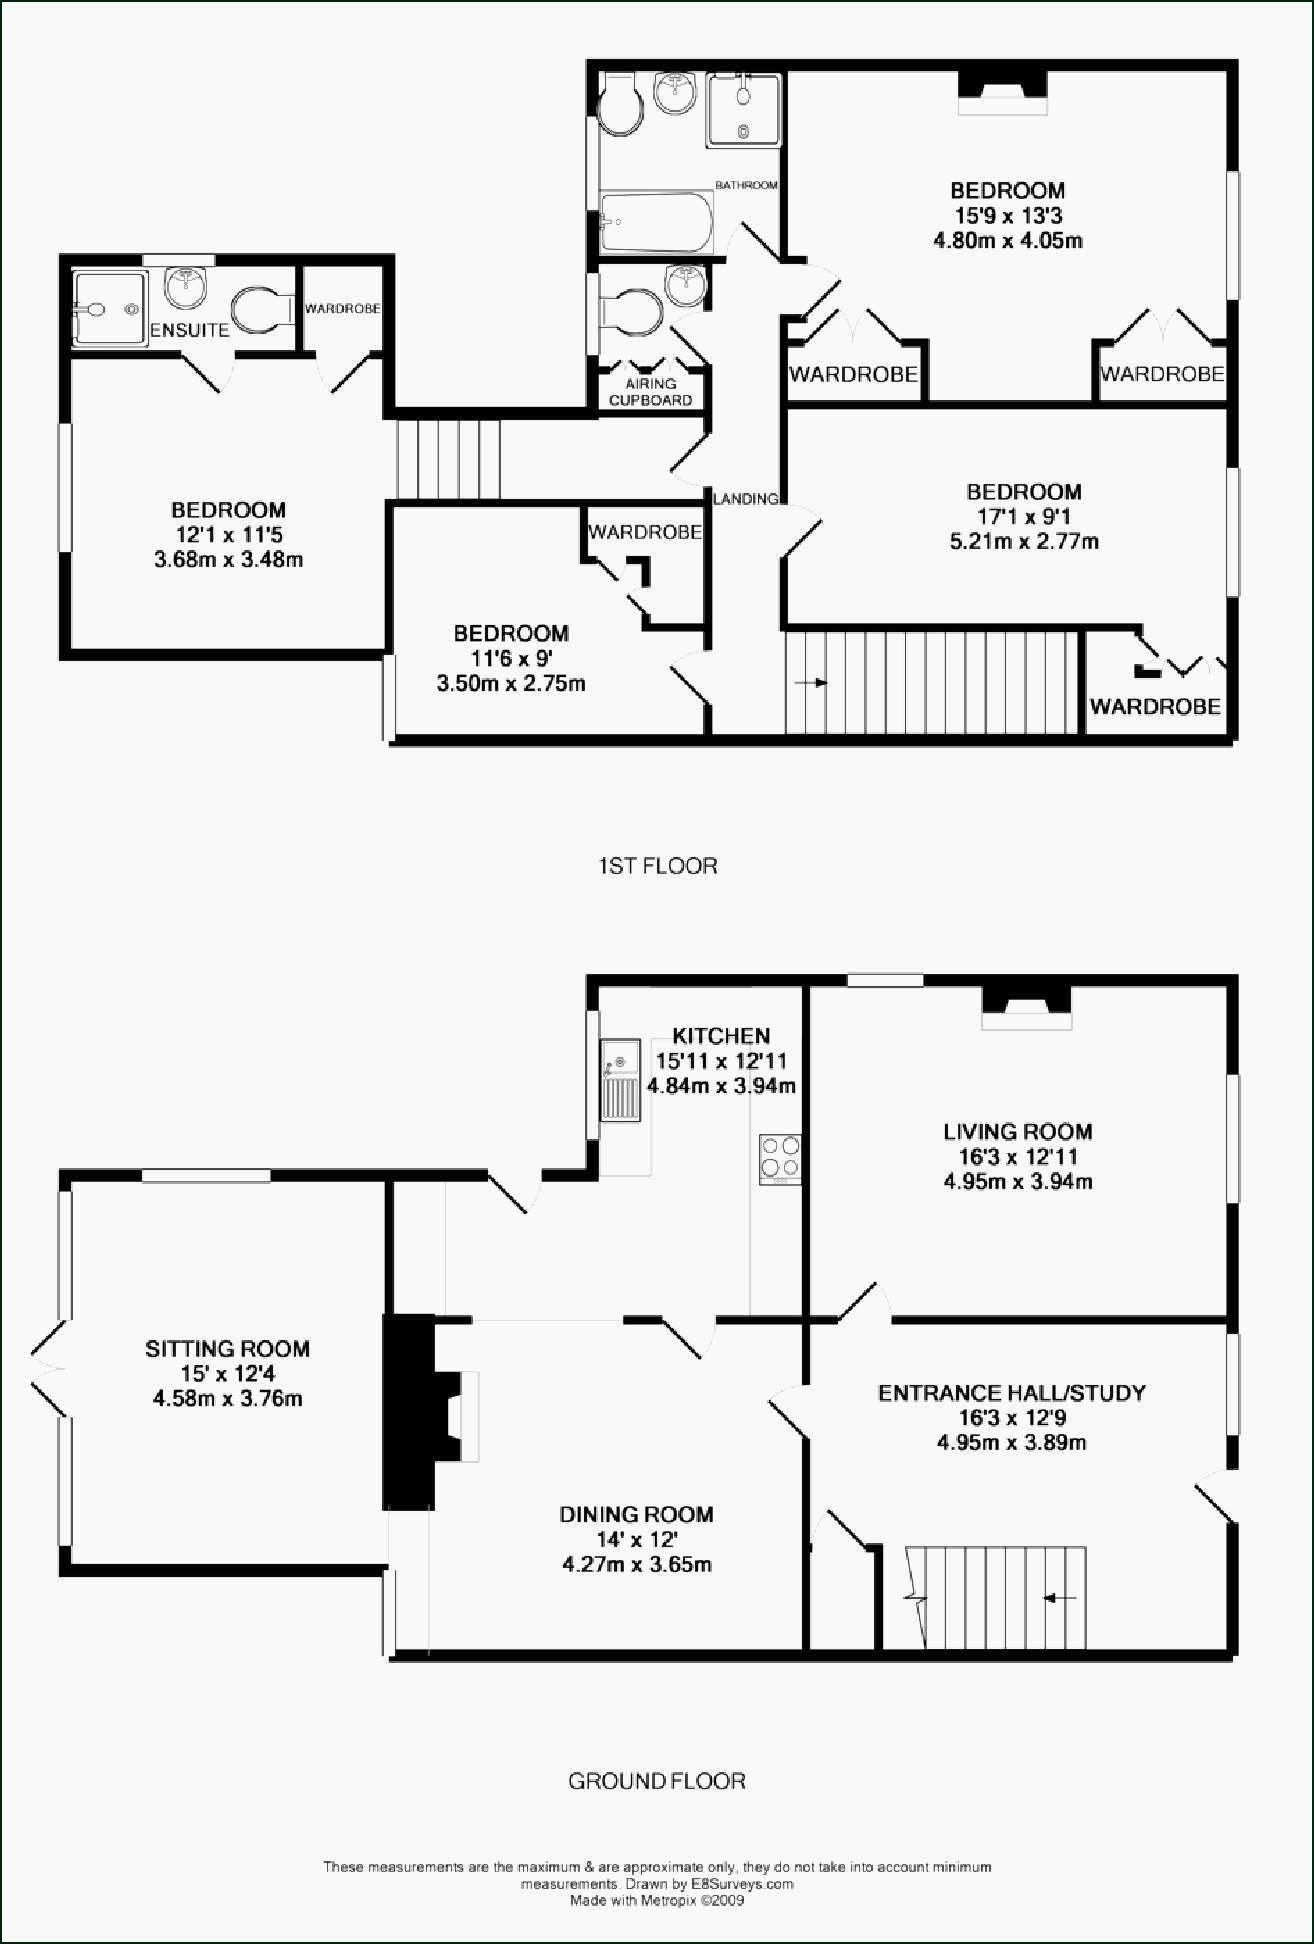 Premade Floor Plans Bedroom House Plans House Plans Tiny House Plans